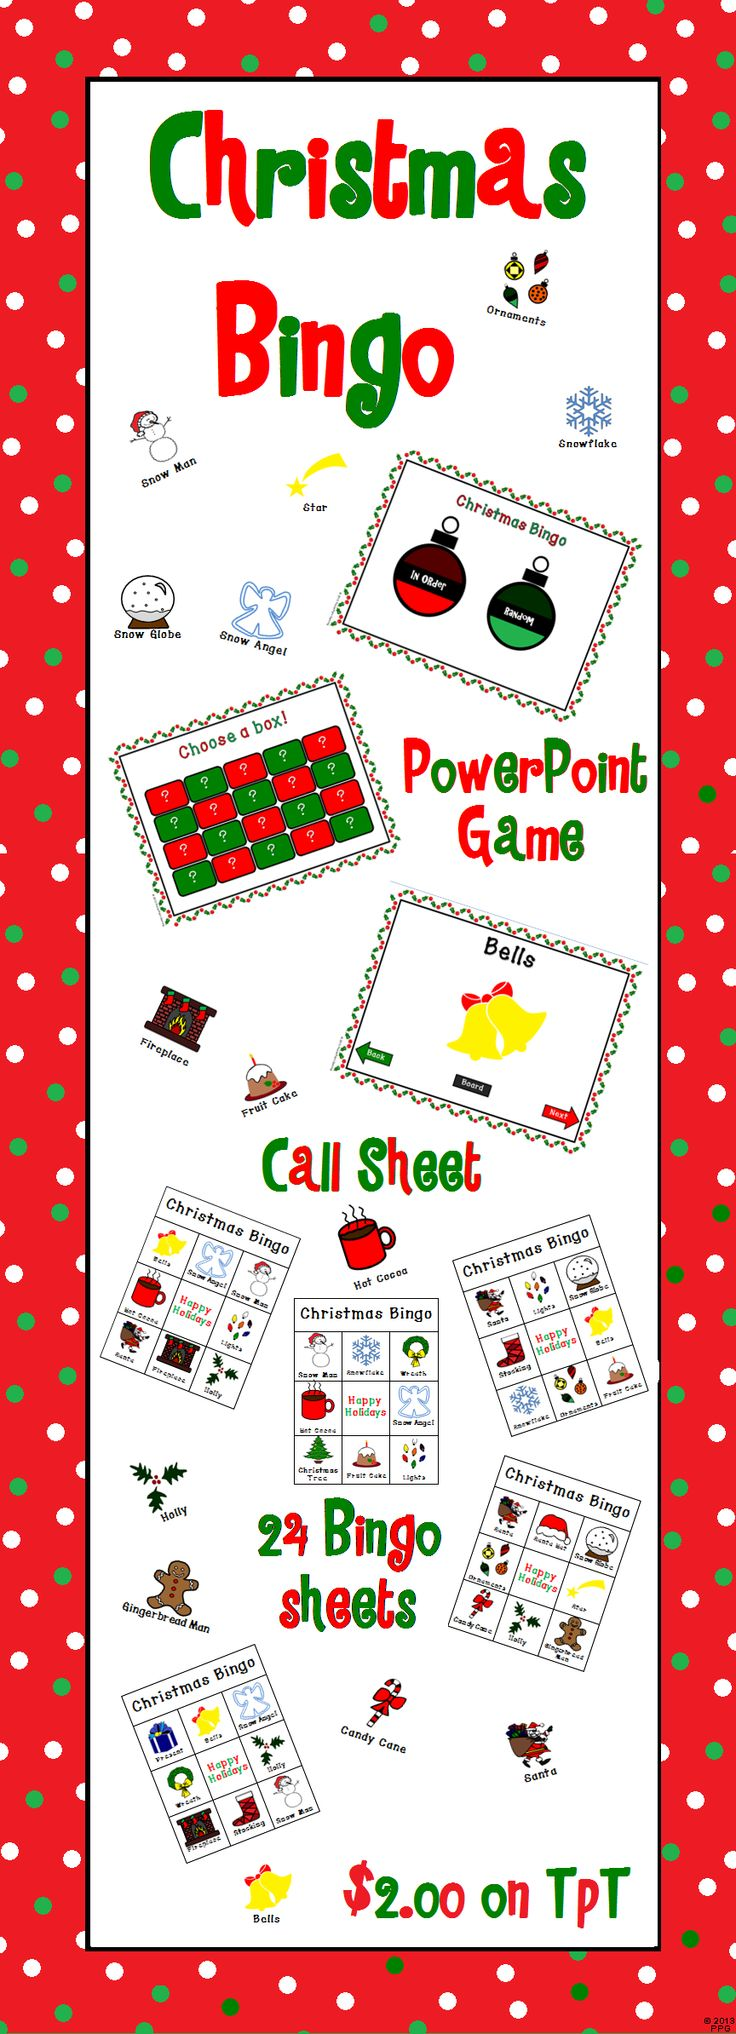 """Here's a Christmas bingo game I made. Comes with everything you need (except chips). Use the powerpoint included to have students identify the correct Christmas pictures on their bingo sheet. Each sheet has different pictures so only one or two students will get bingo at a time. Bingo sheets are 3 X 3 with a """"Happy Holidays"""" as a free space on each sheet. Words are under each picture."""